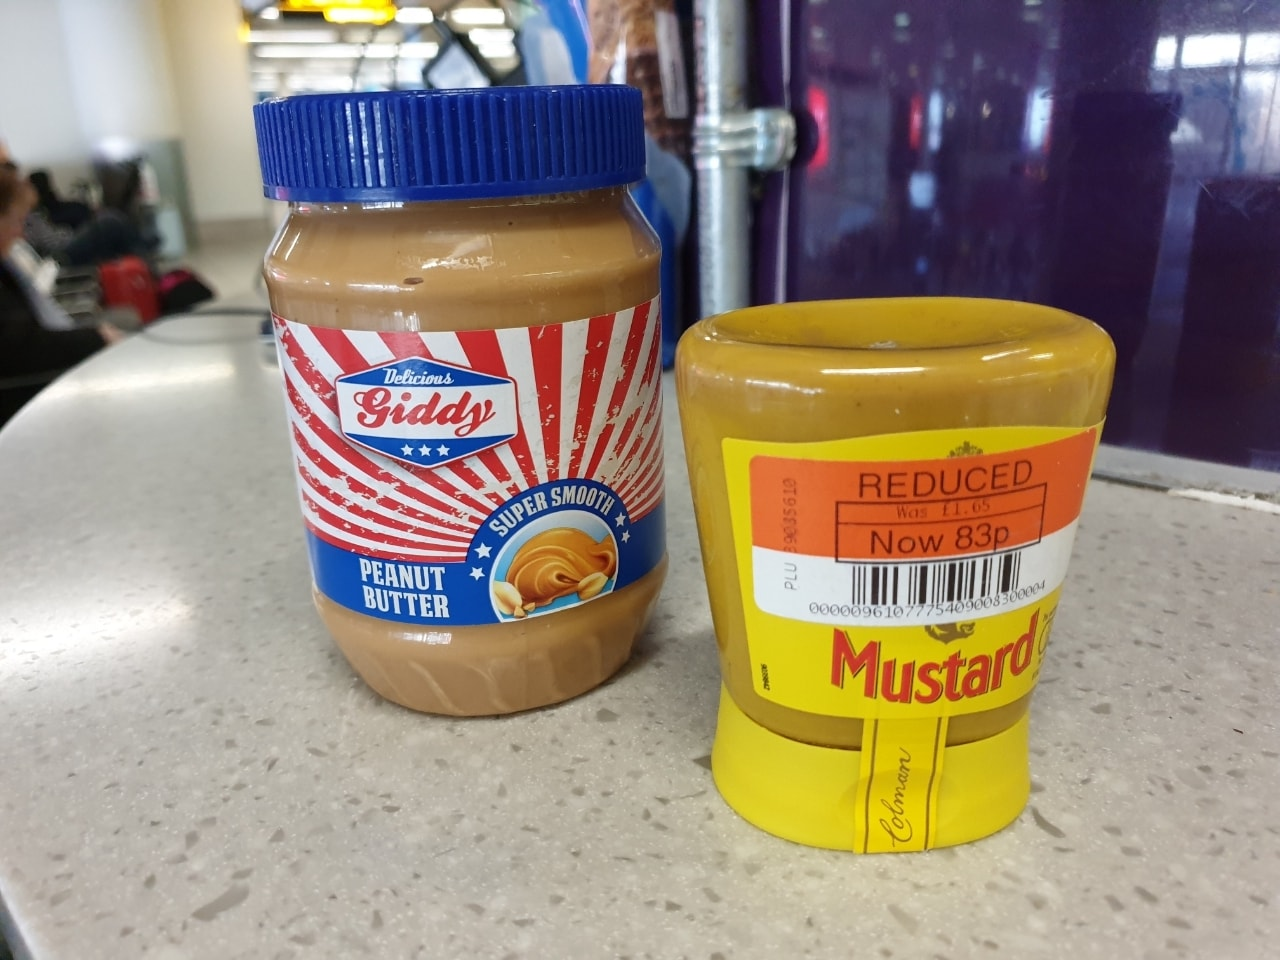 Peanut butter and mustard